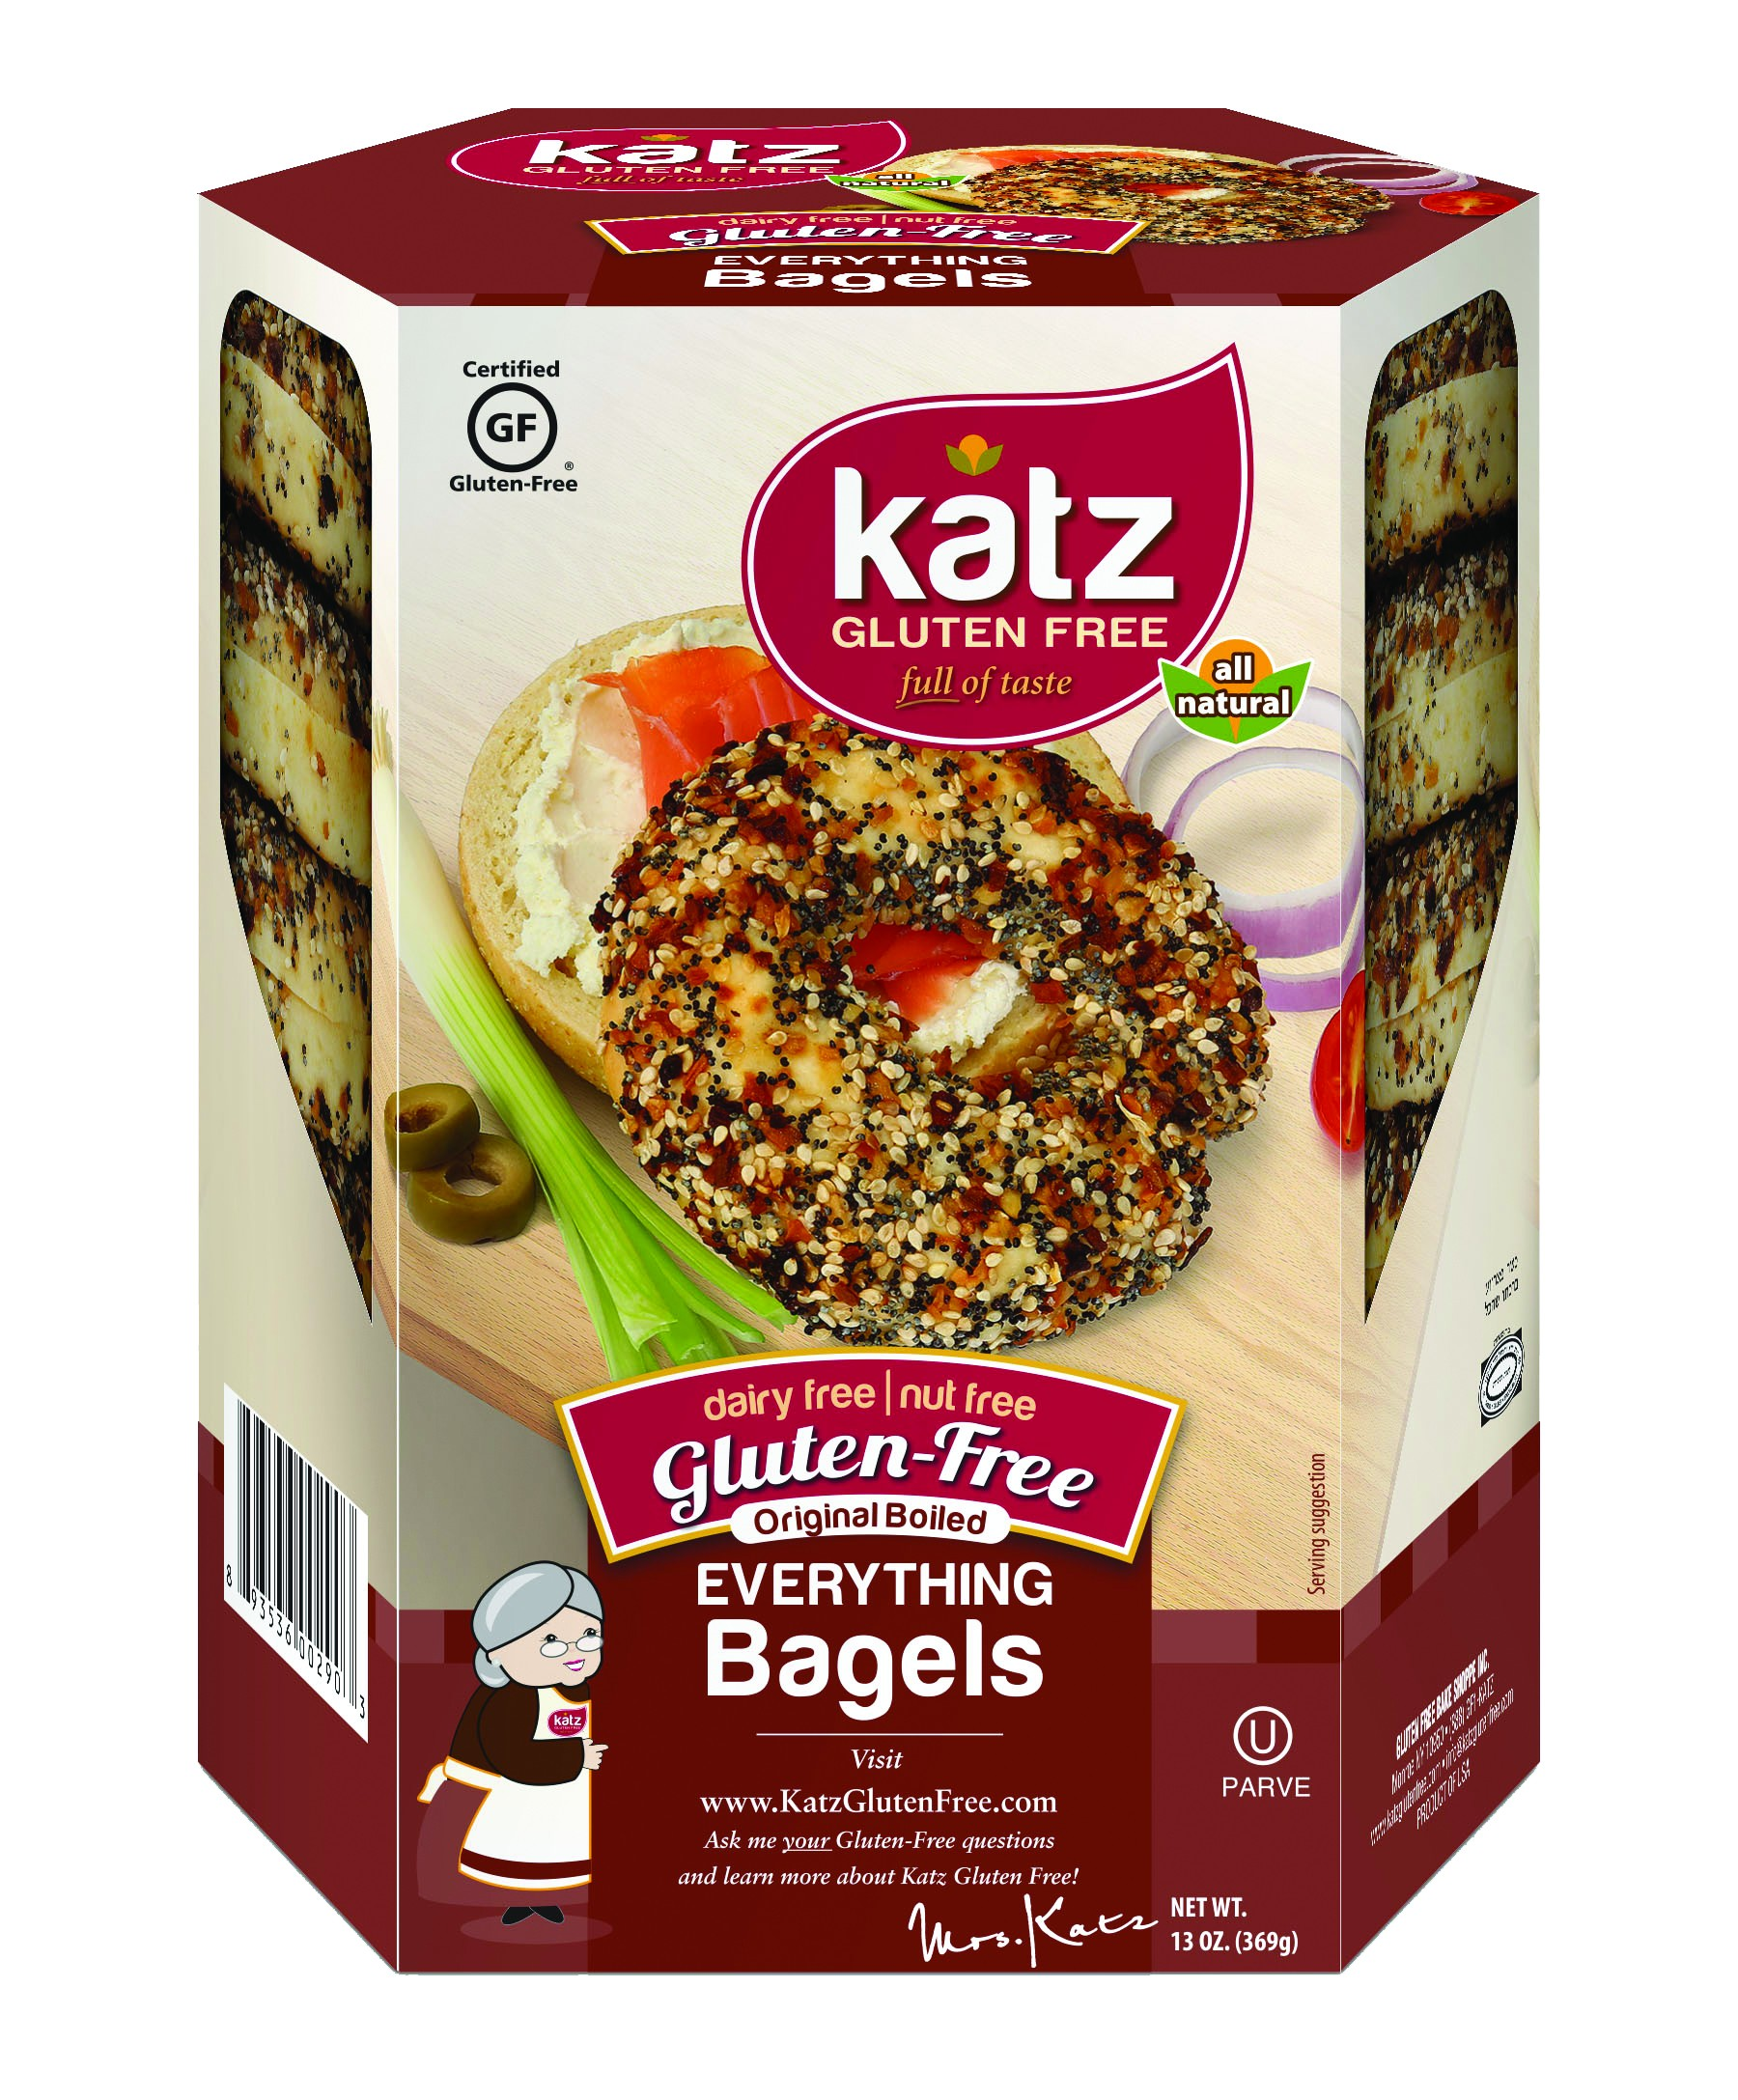 Katz Gluten Free Everything Bagels (Case of 6)